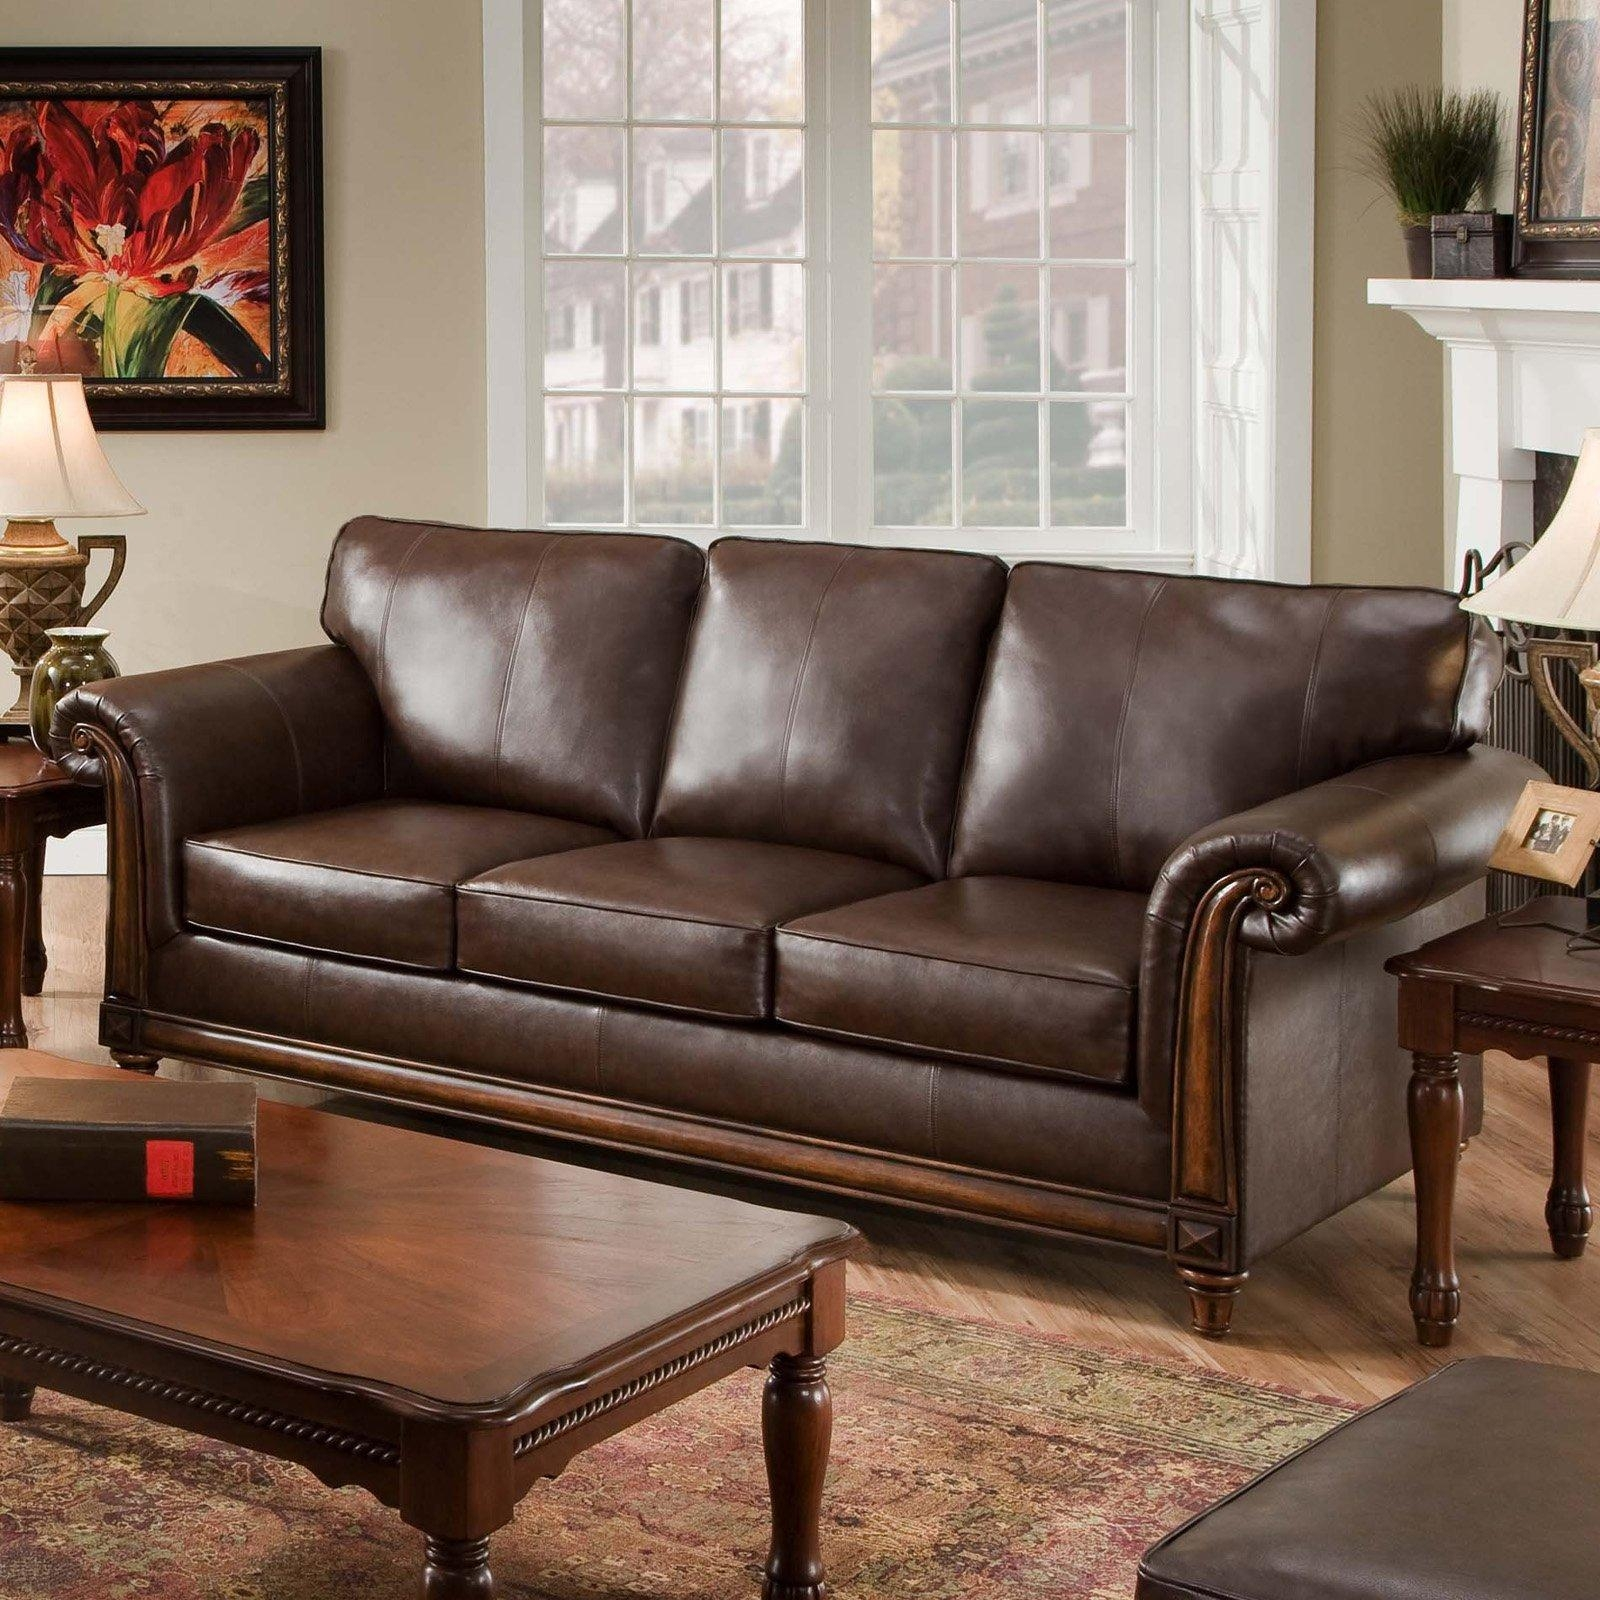 custom sofa san diego chesterfield leather craigslist 2019 latest sectional ideas